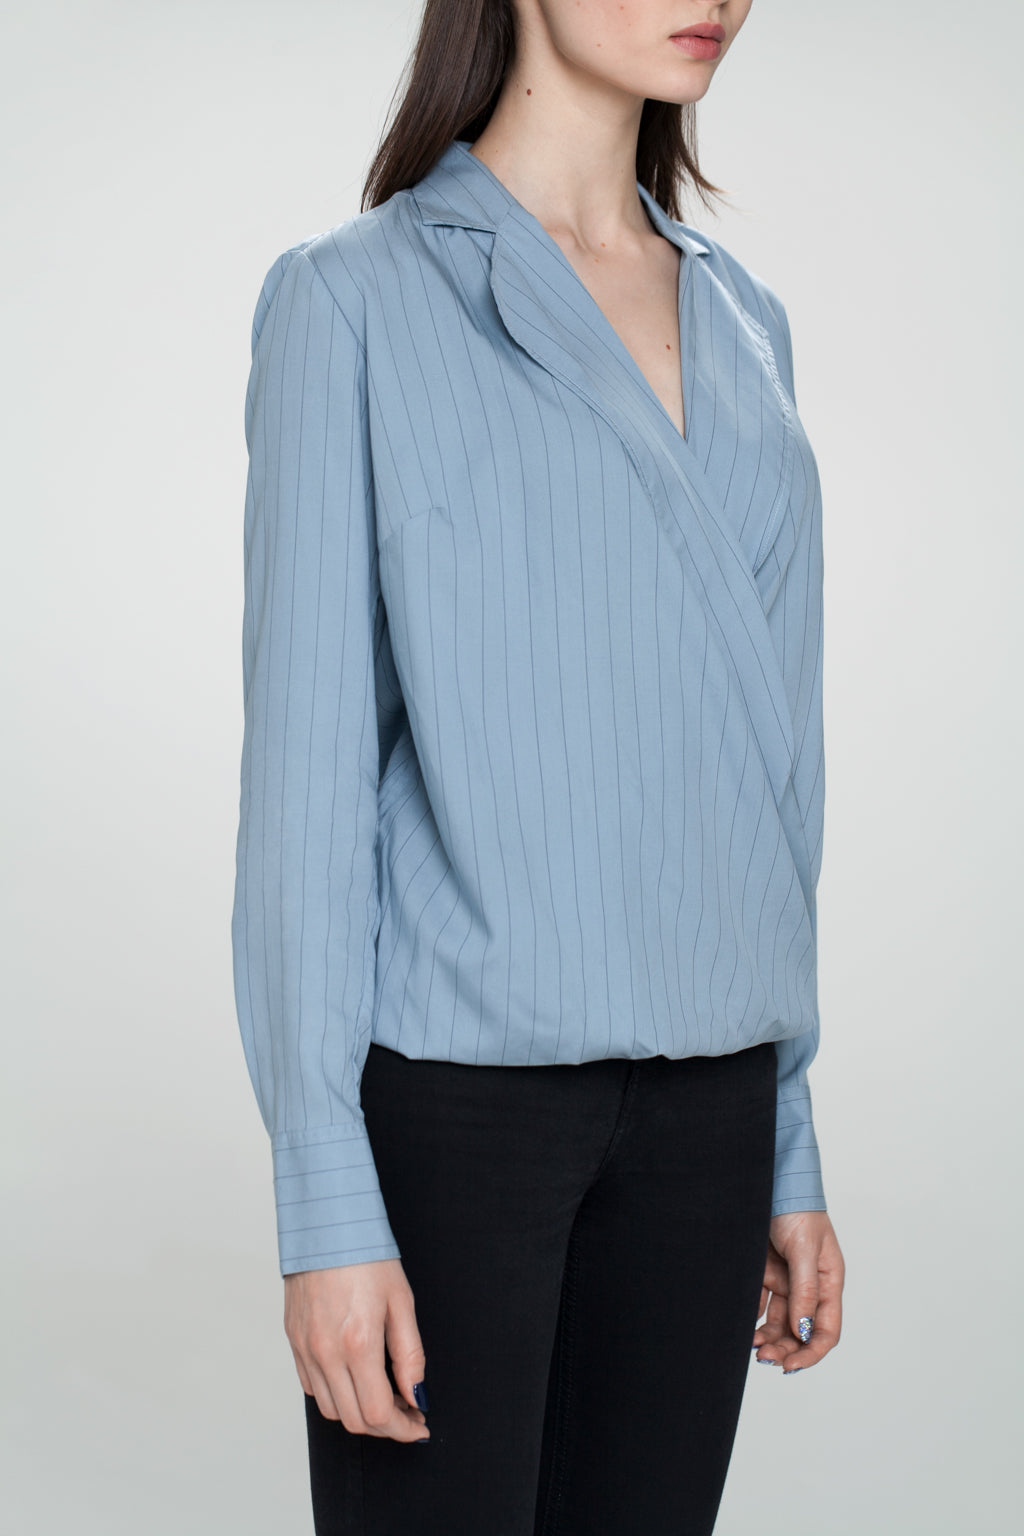 LAUFEY REVERE COLLAR AND FOLDED FRONT SHIRT